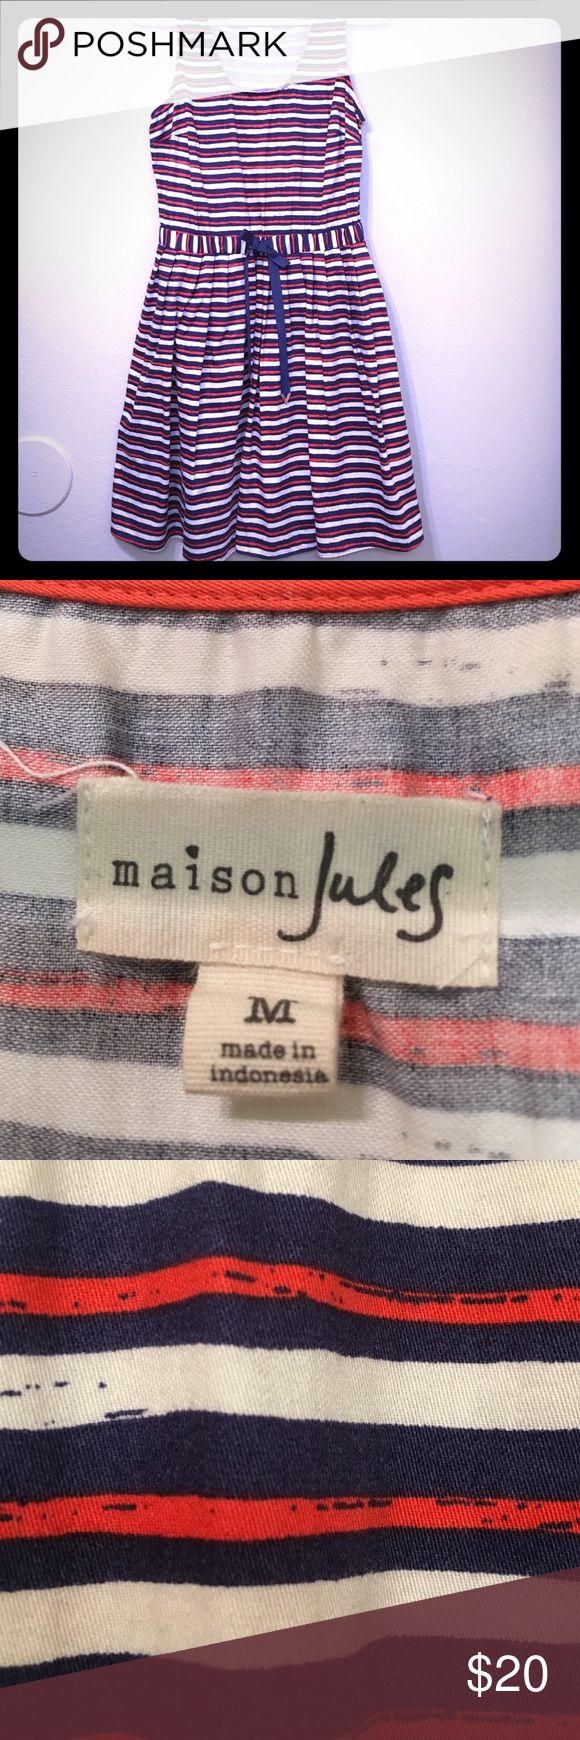 Maison Jules dress Navy striped dress with draw string- in good used condition. Maison Jules Dresses Mini